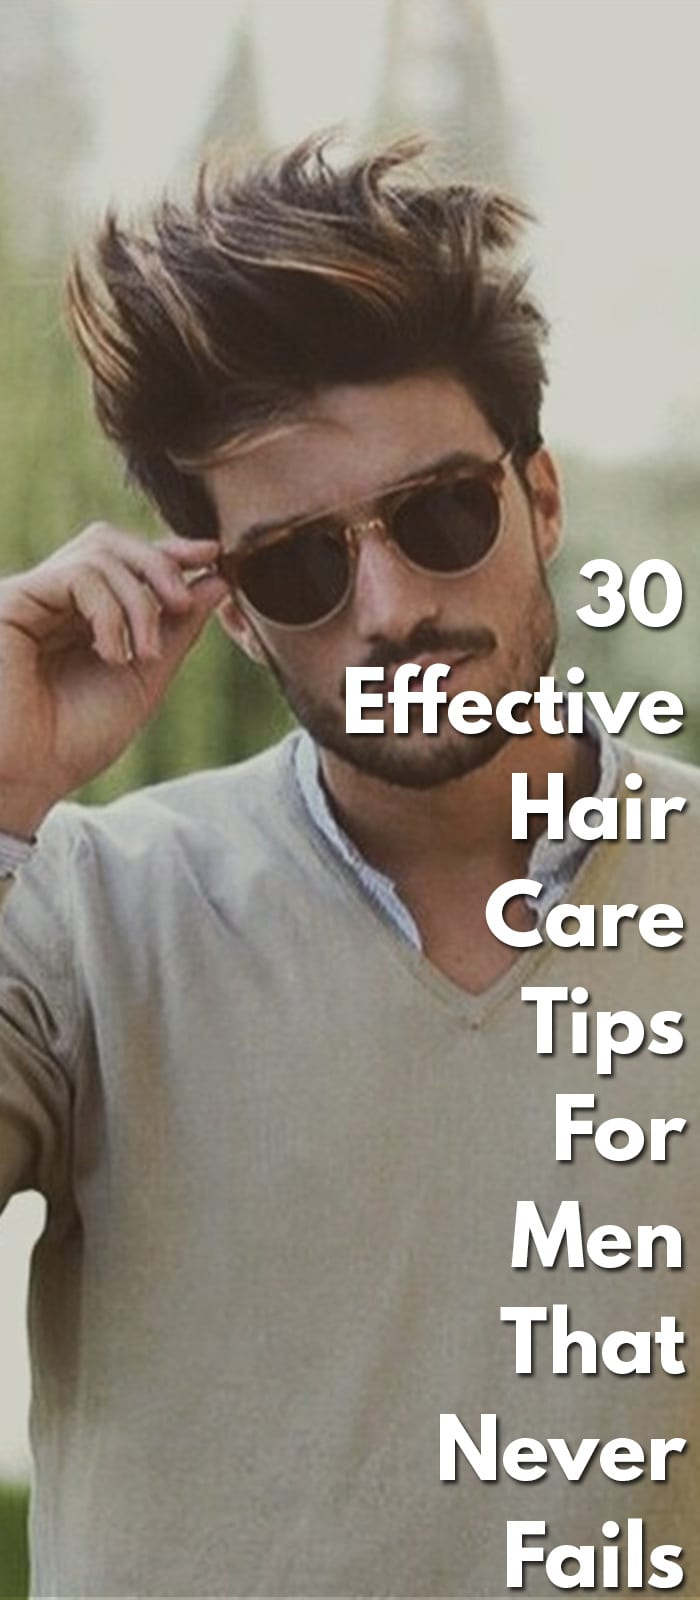 30-Effective-Hair-Care-Tips-For-Men-That-Never-Fails